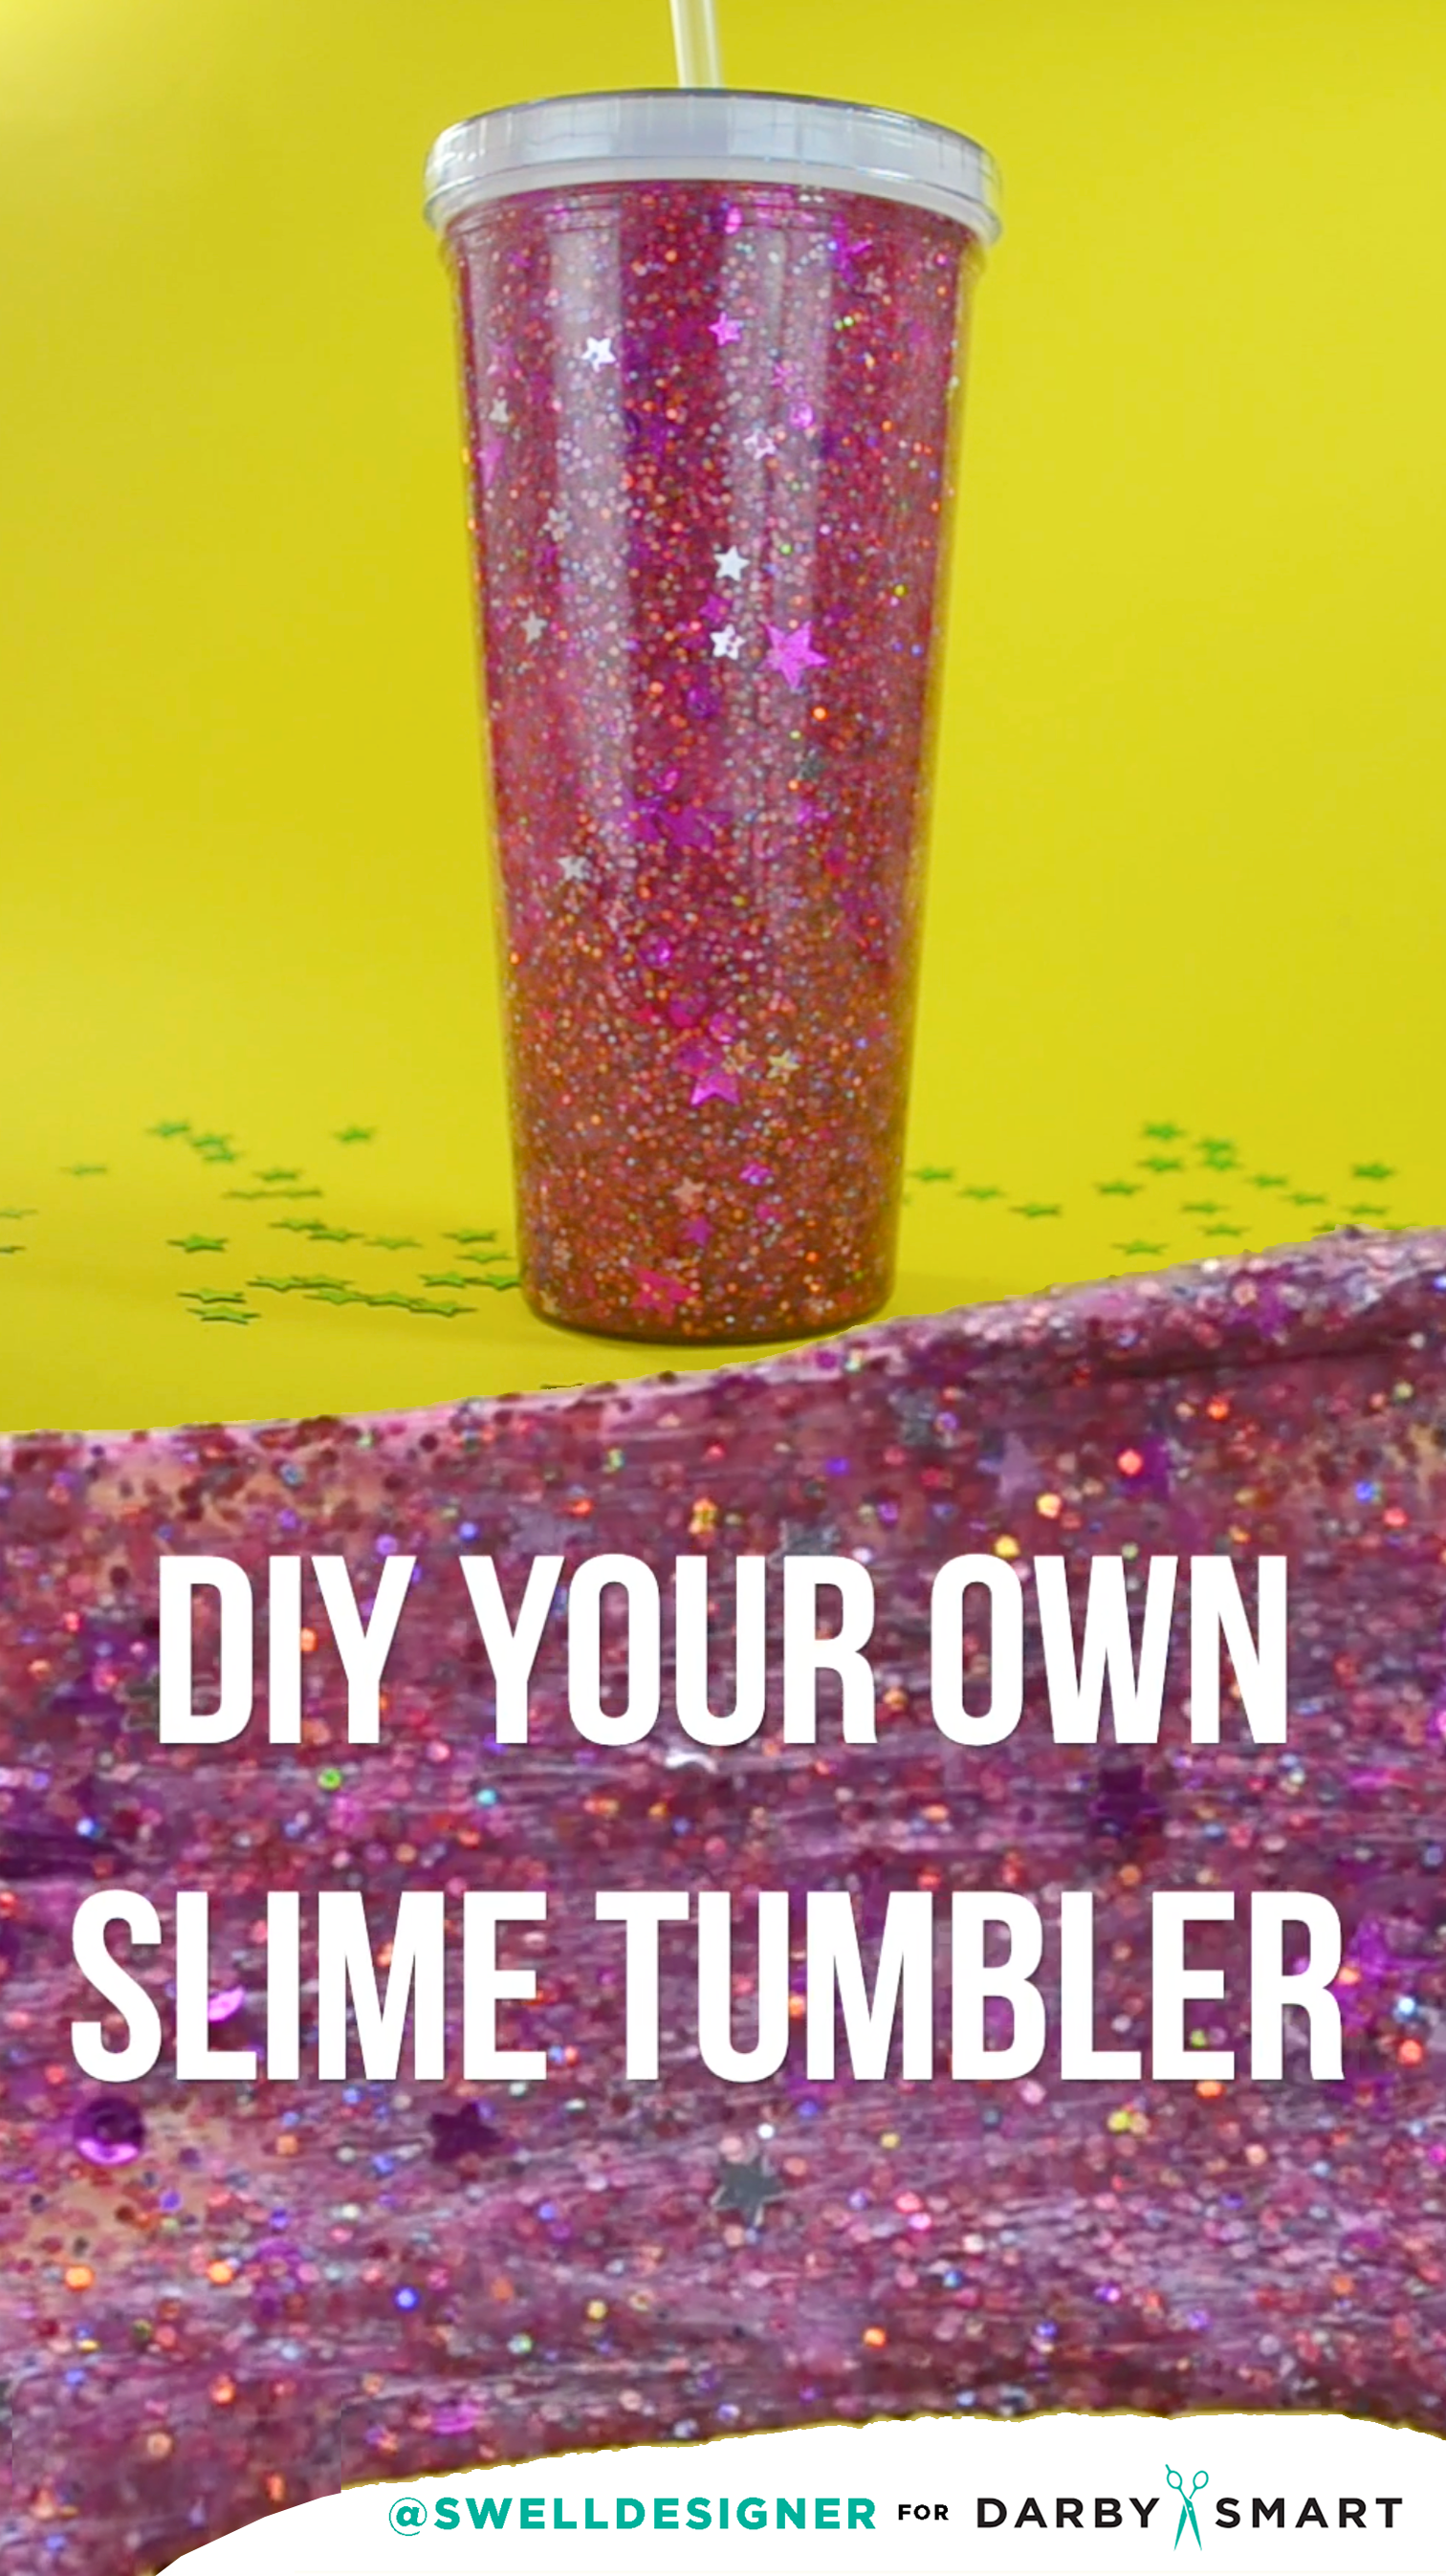 diy-your-own-slime-tumbler-graphic